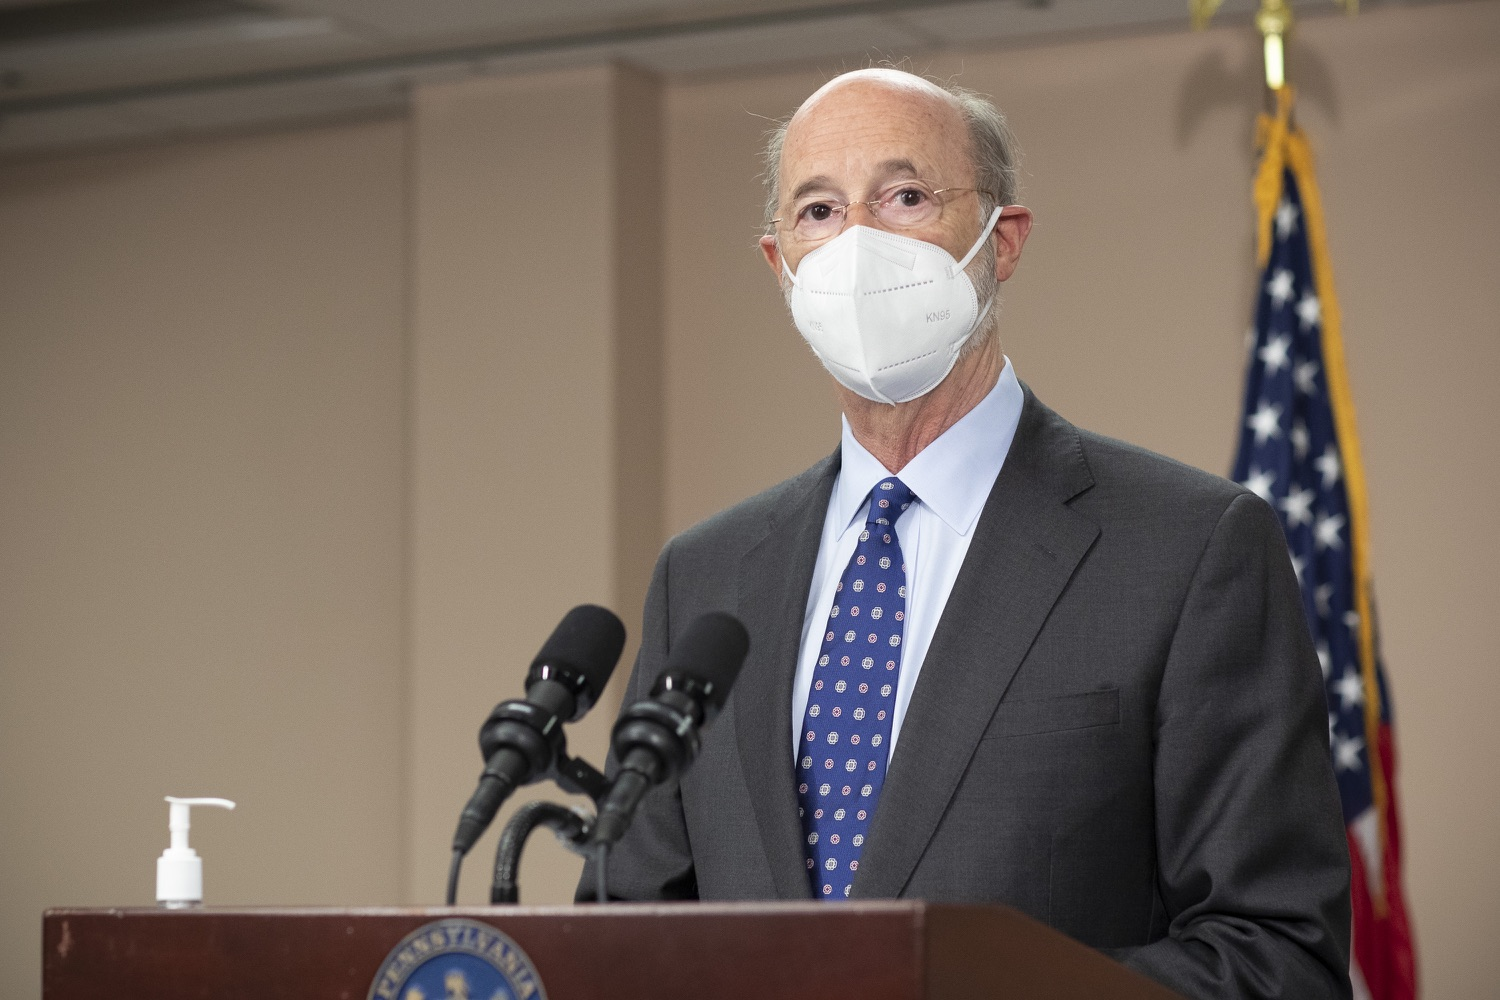 """<a href=""""https://filesource.wostreaming.net/commonwealthofpa/photo/18646_gov_vaccines_dz_010.jpg"""" target=""""_blank"""">⇣Download Photo<br></a>Pennsylvania Governor Tom Wolf speaking with the press.  After vaccinating more than 112,500 teachers and school staff in only about three weeks, Governor Tom Wolf visited Luzerne County today to announce the special vaccination initiative is a success and was completed ahead of schedule. The accomplishment is an important step to help more students and teachers safely return to classrooms across the state.  Kingston, PA - April 2, 2021"""